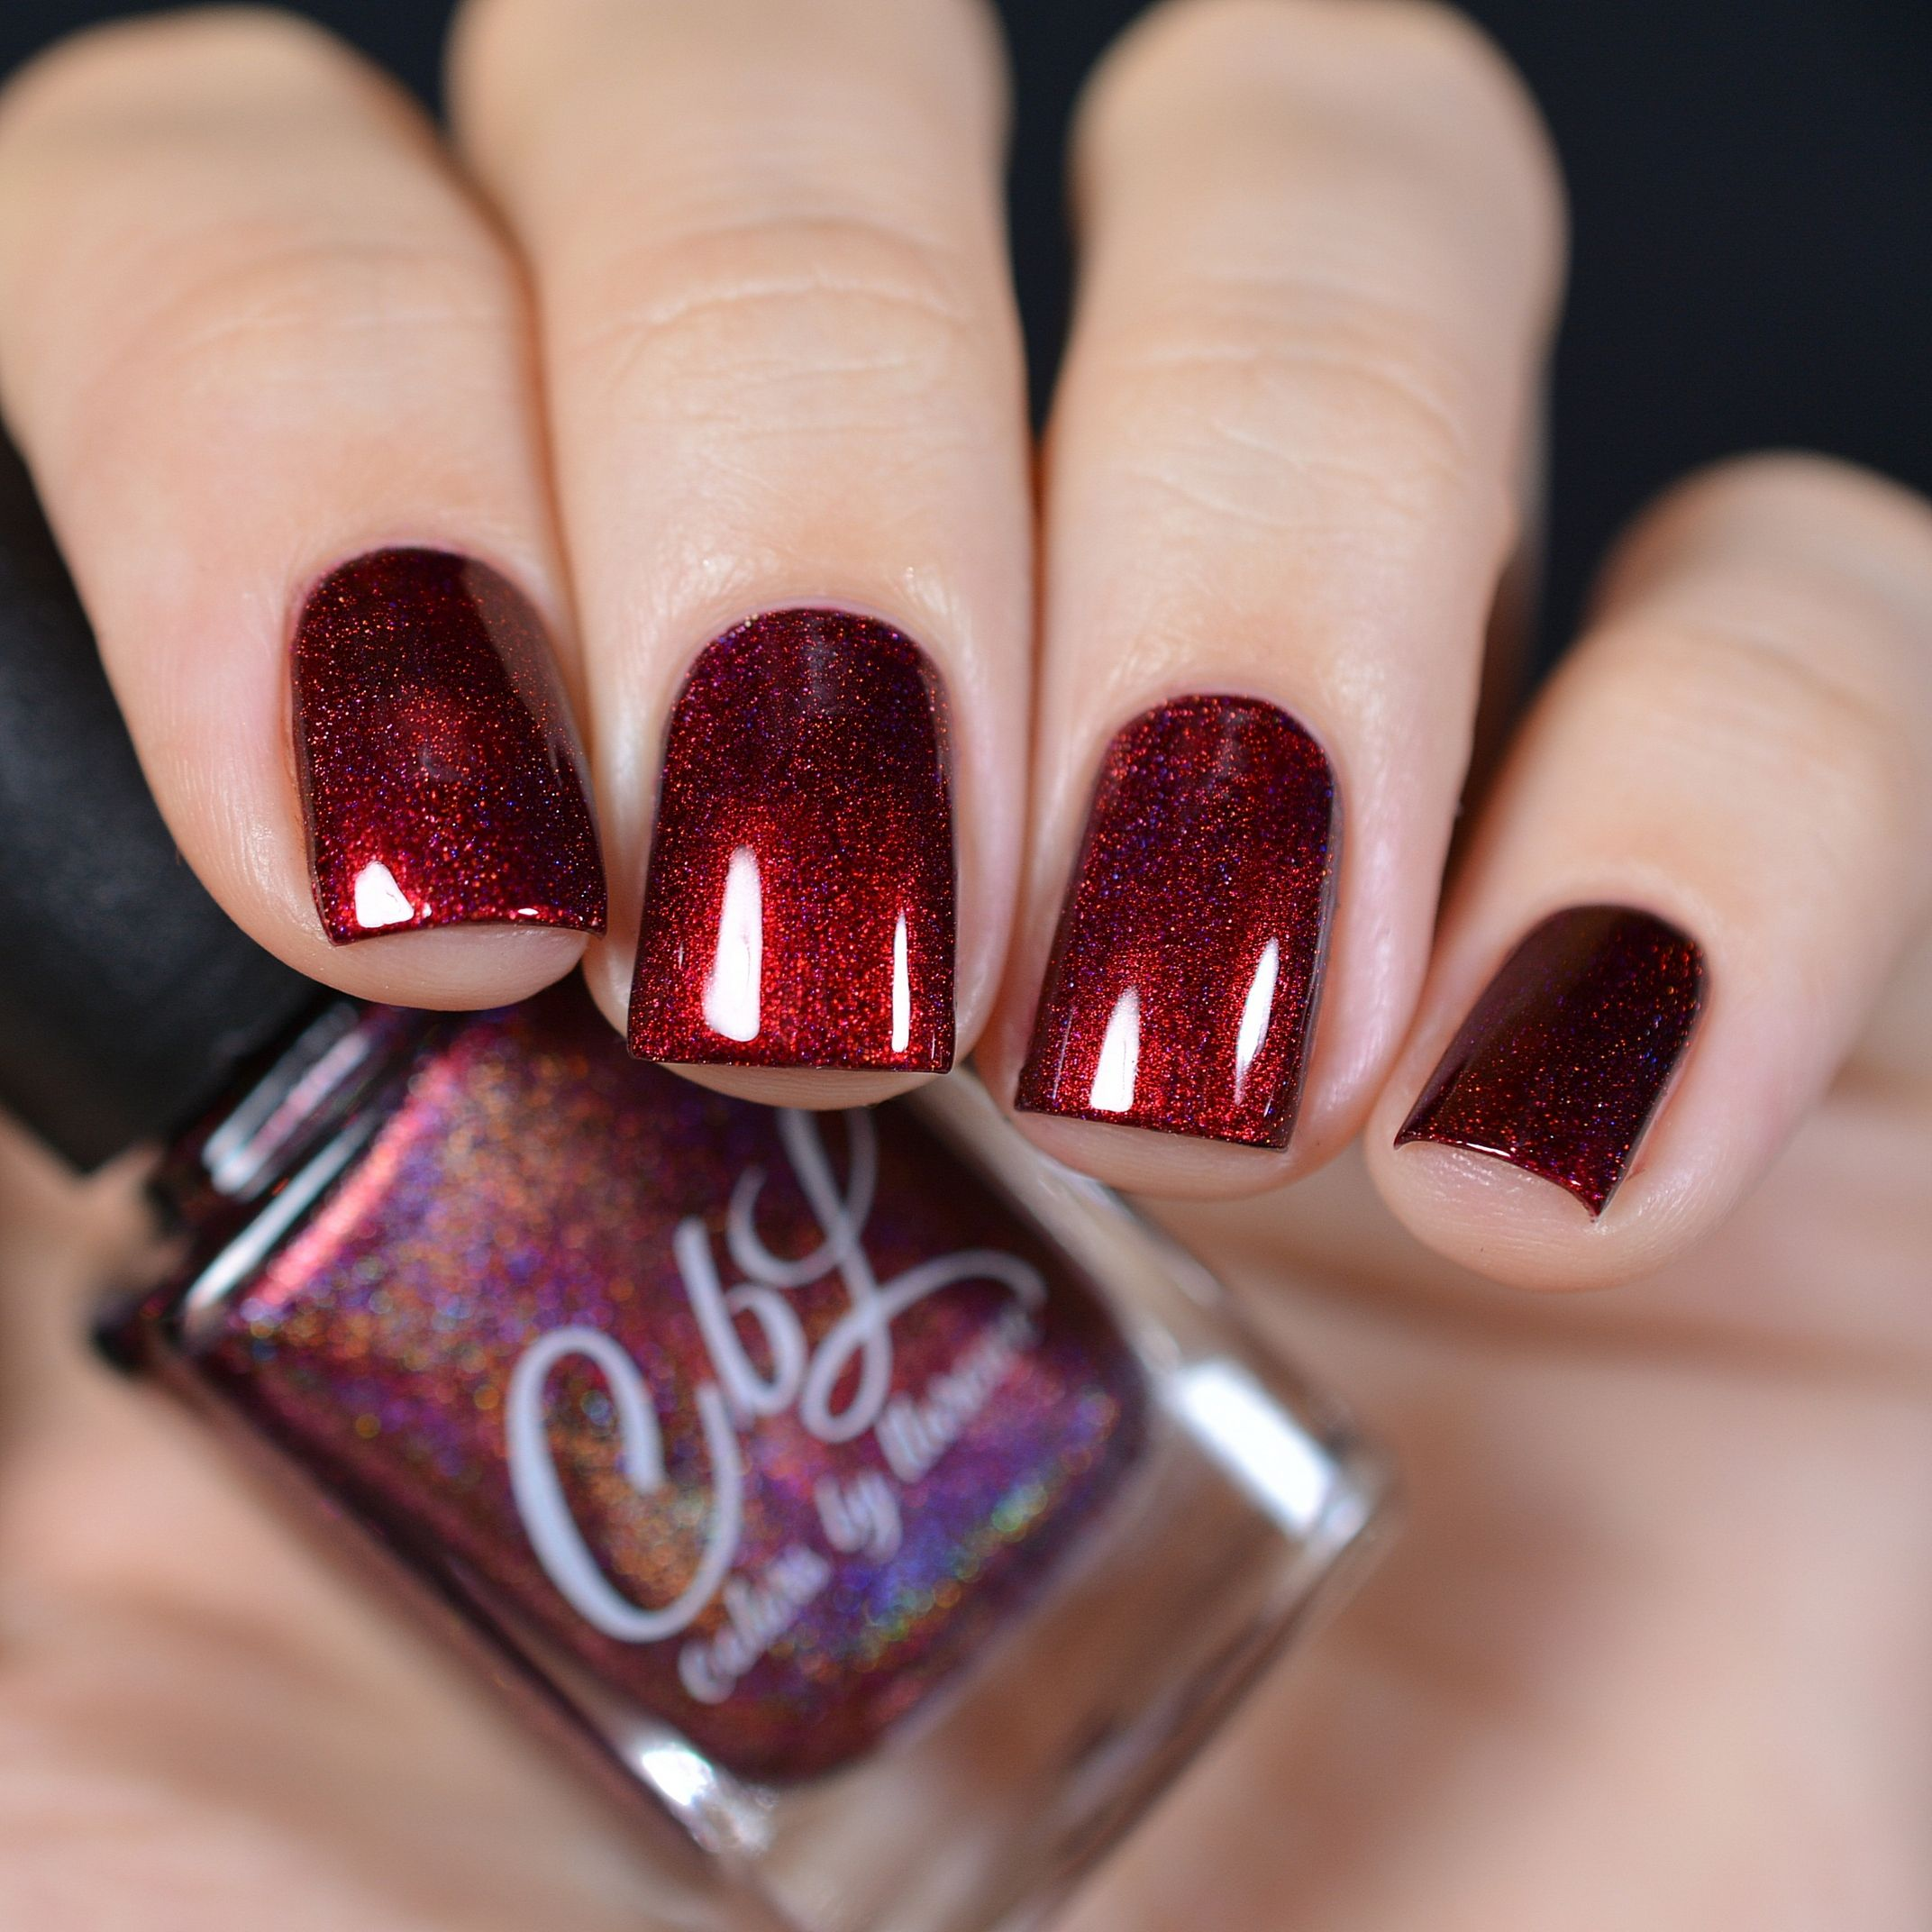 CbL Valentines 2017 - Hearts On Fire - A deep burgundy red linear ...